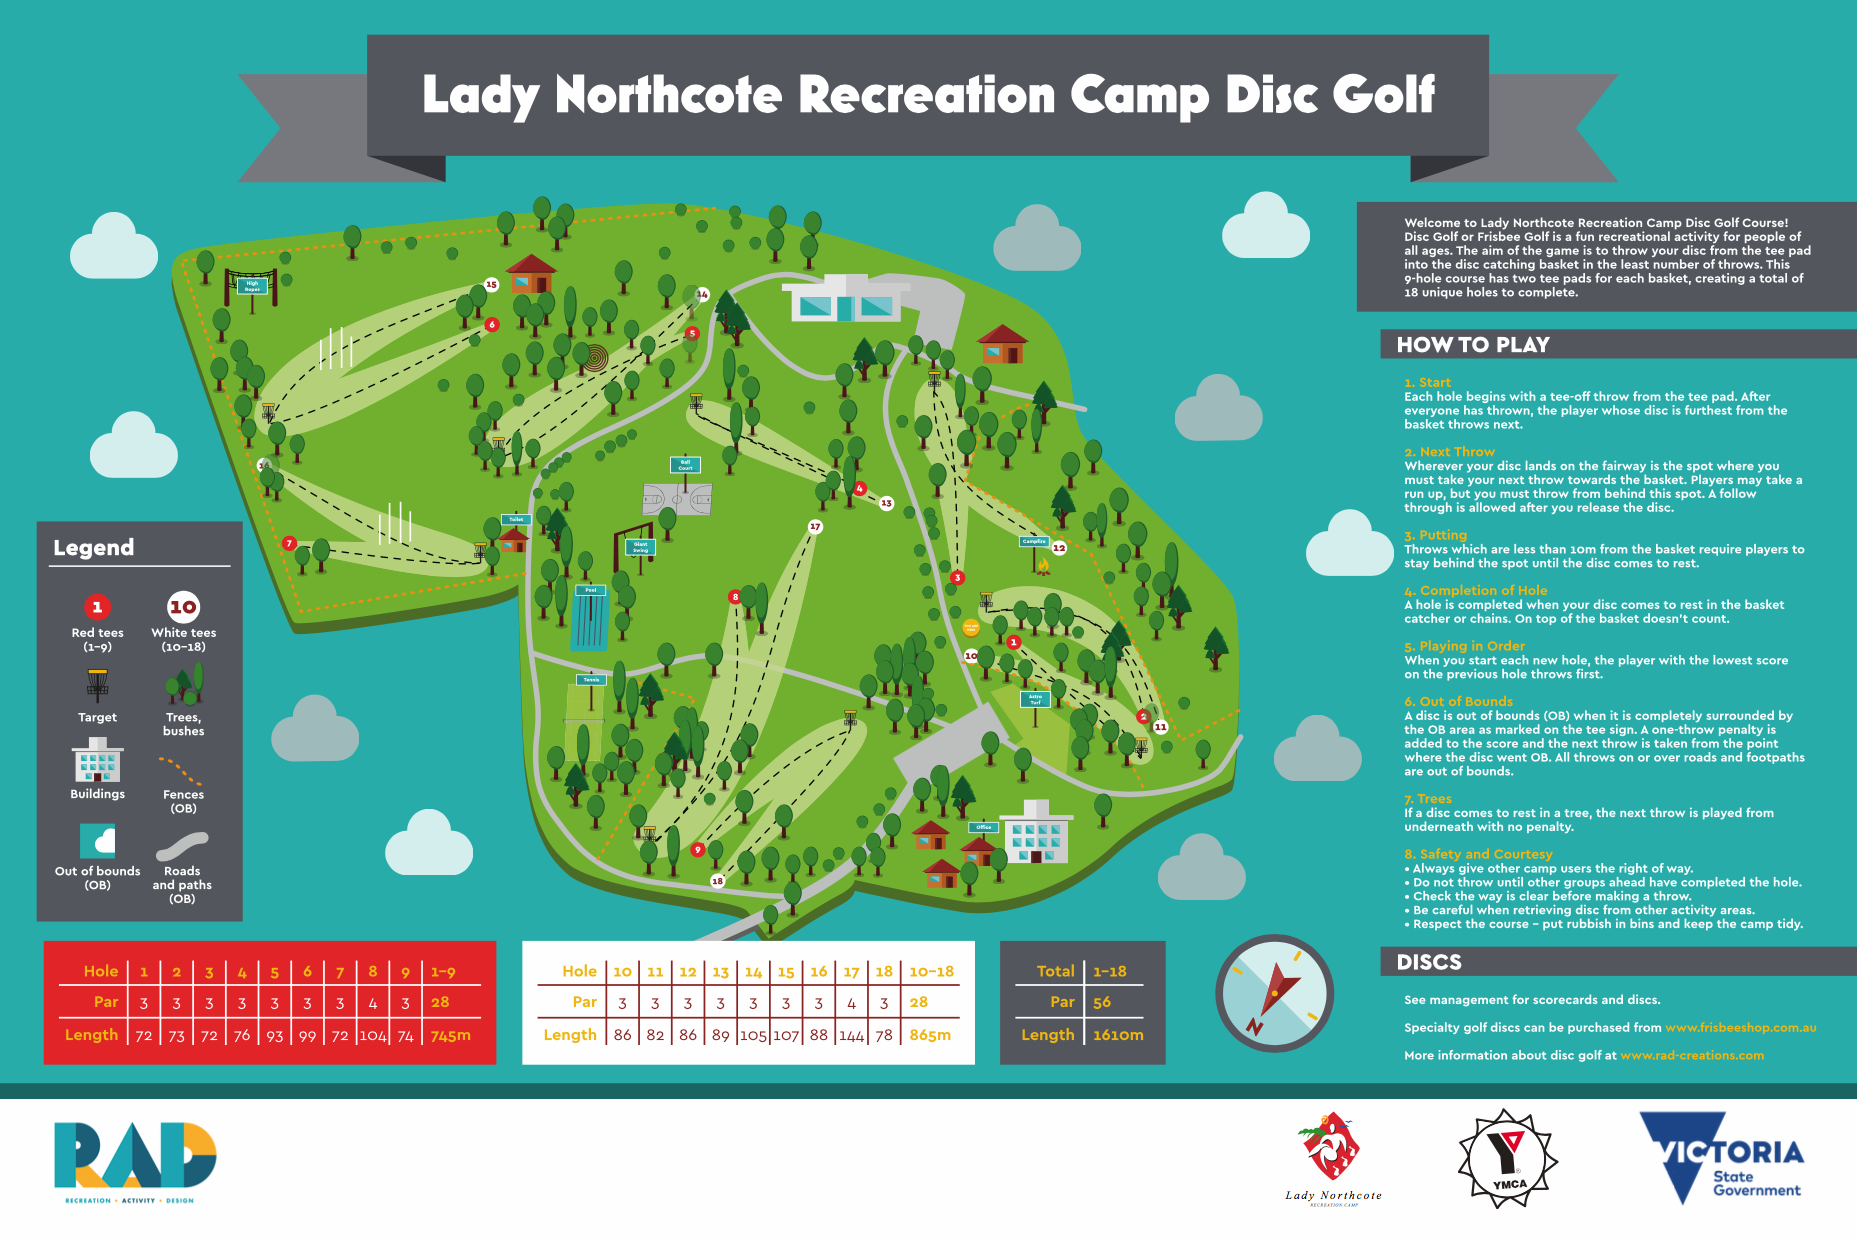 image of Lady Northcote Recreation Camp Disc Golf map